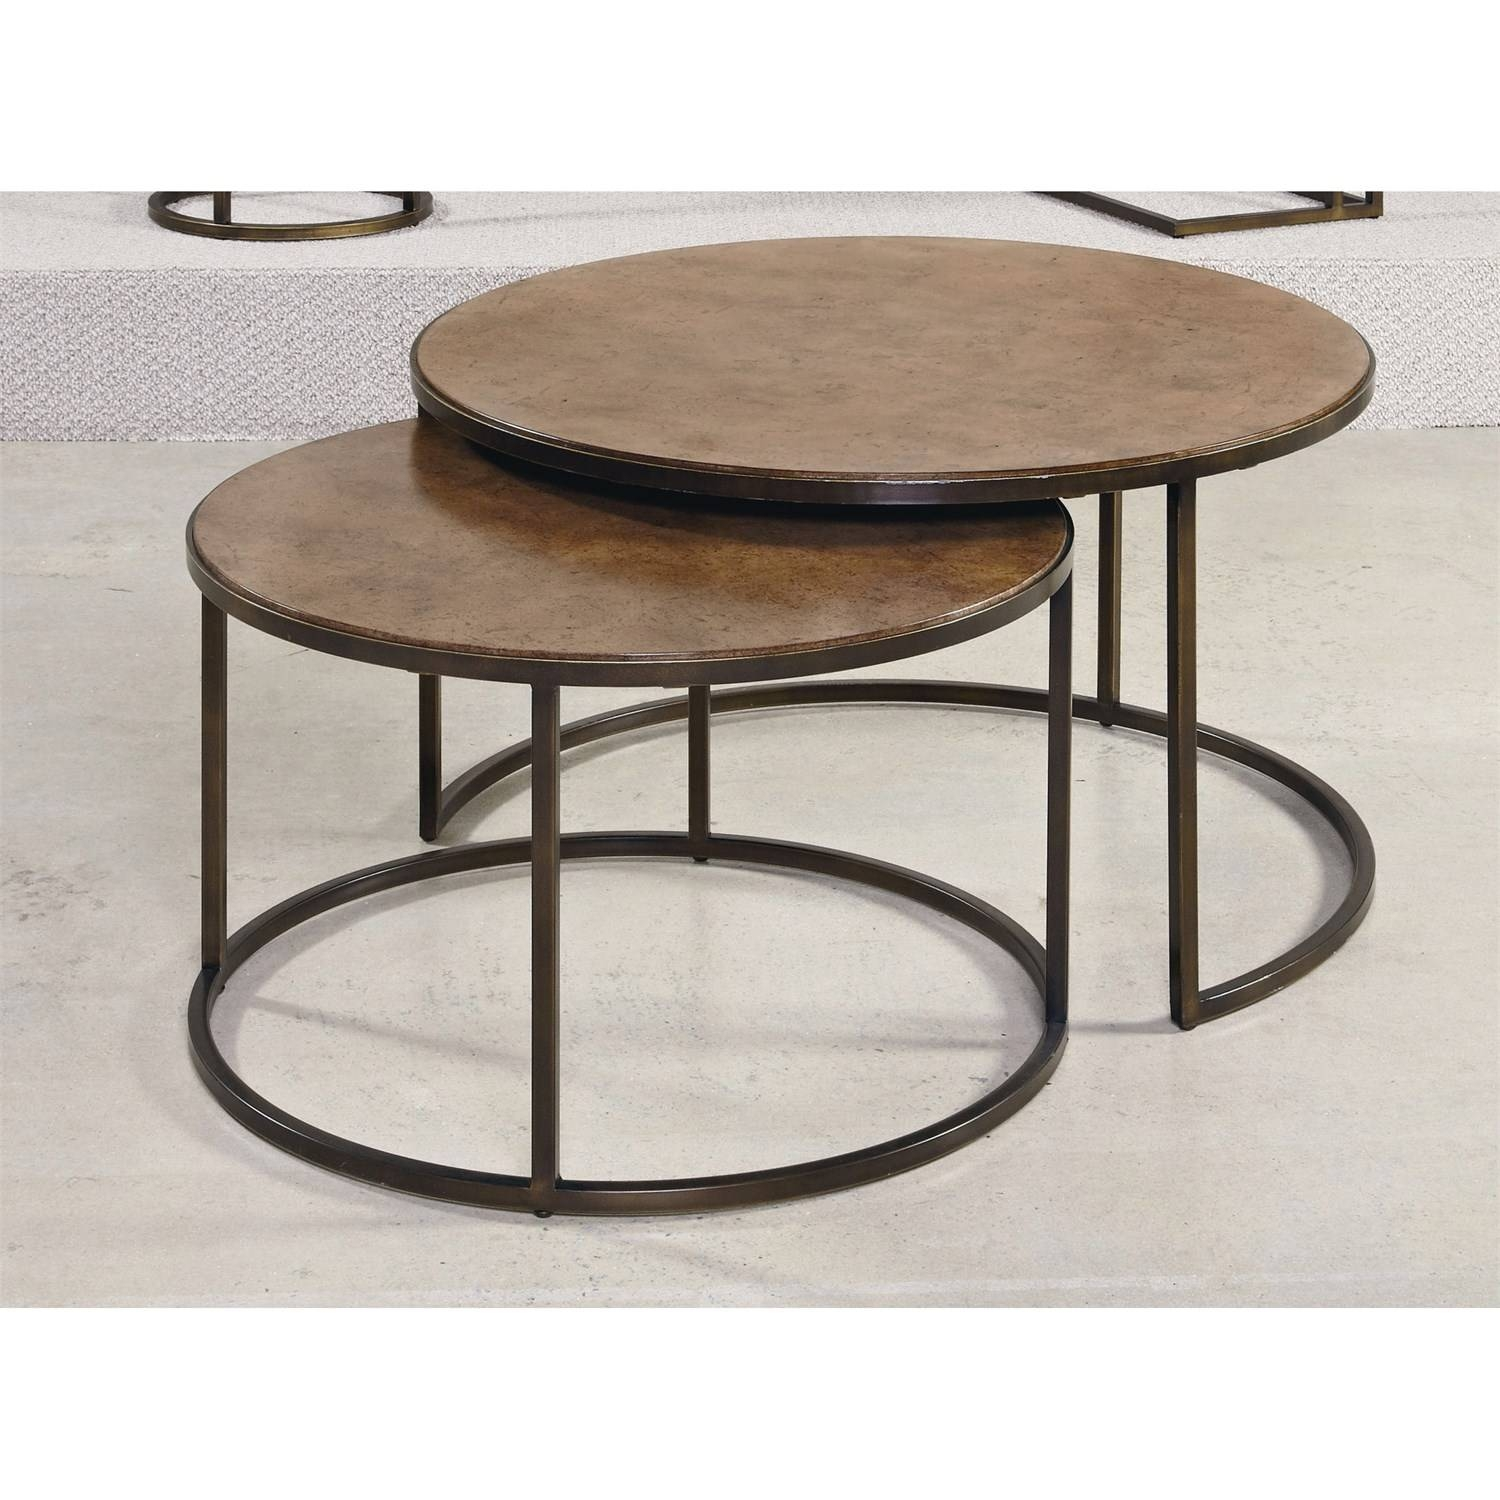 Hammary 376-911 Soho Round Cocktail Table - Homeclick throughout Soho Coffee Tables (Image 10 of 30)